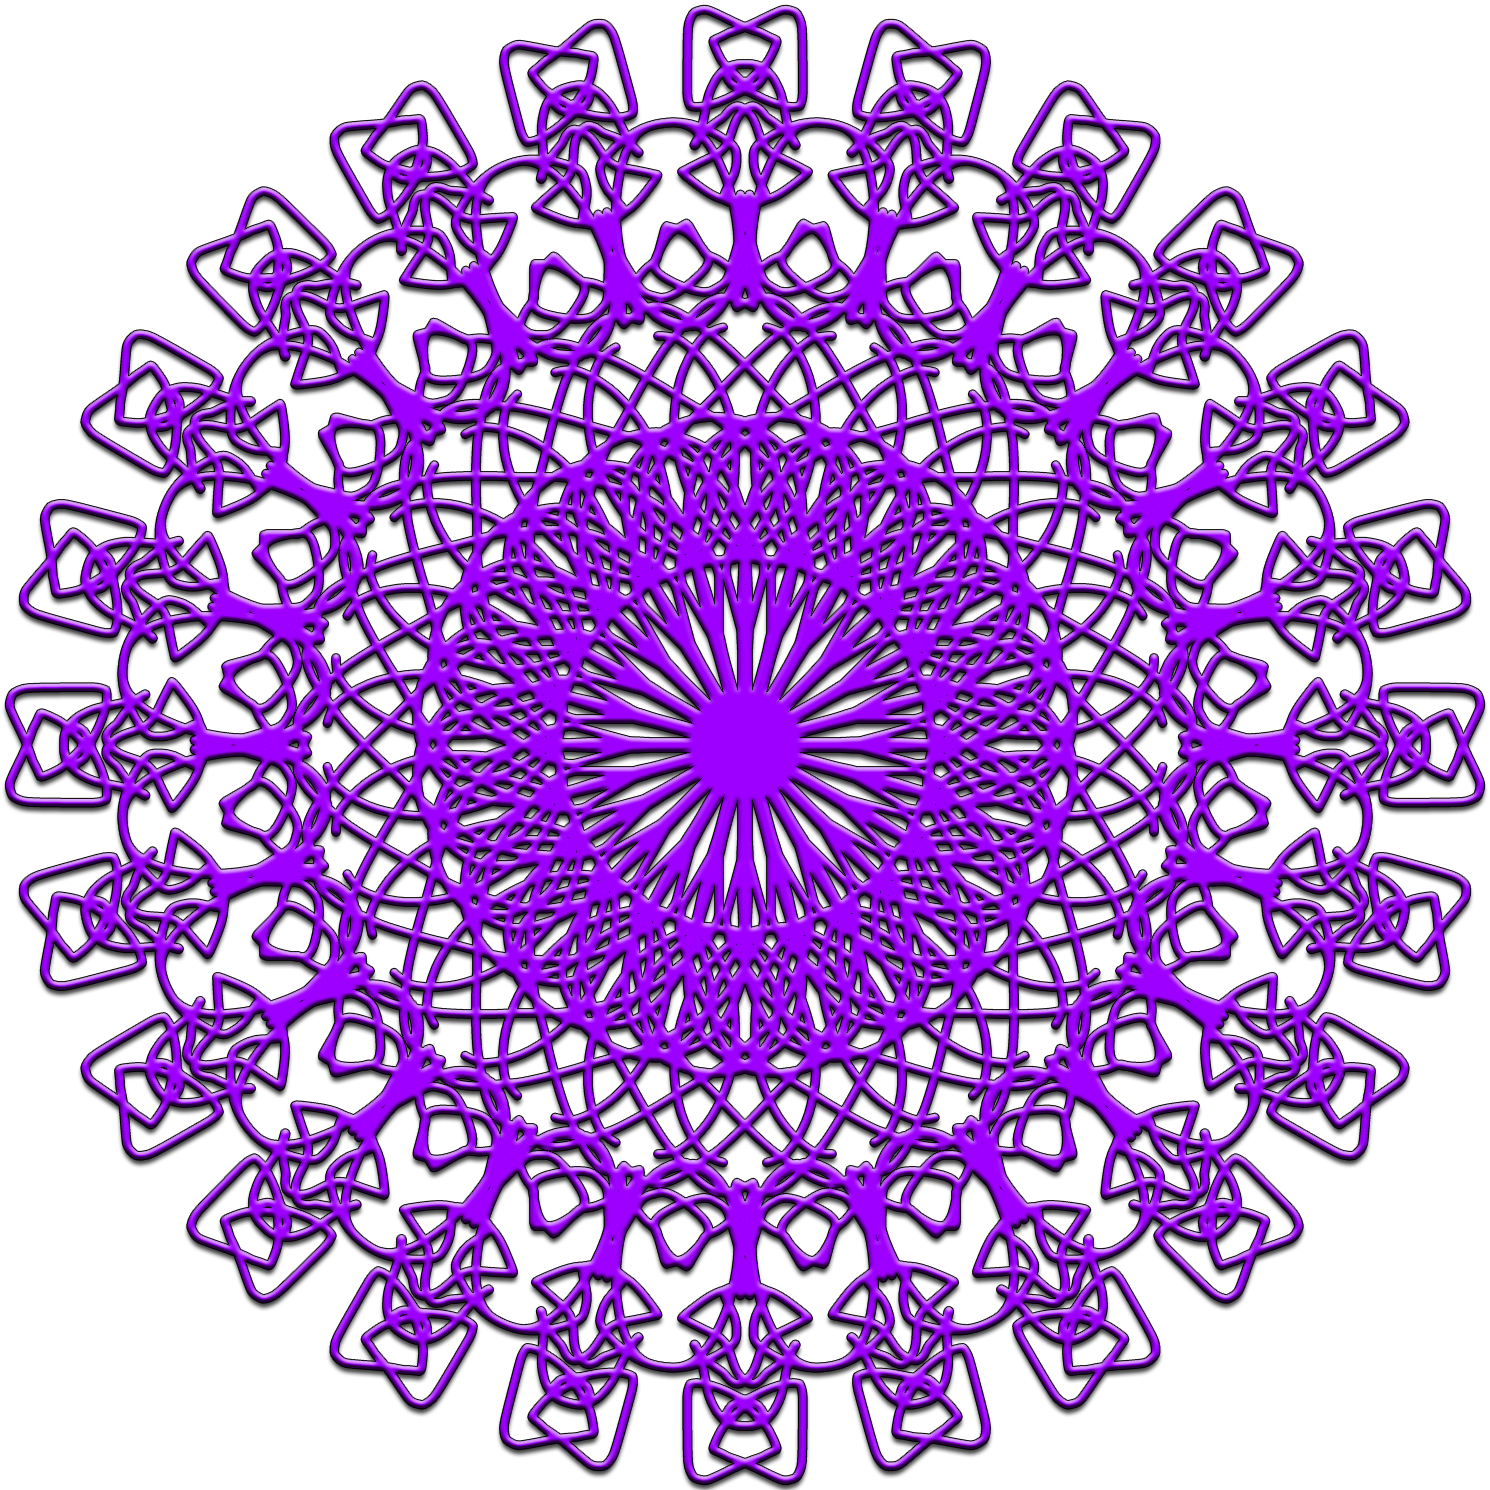 Colorful mandala png. Illustration transprent download